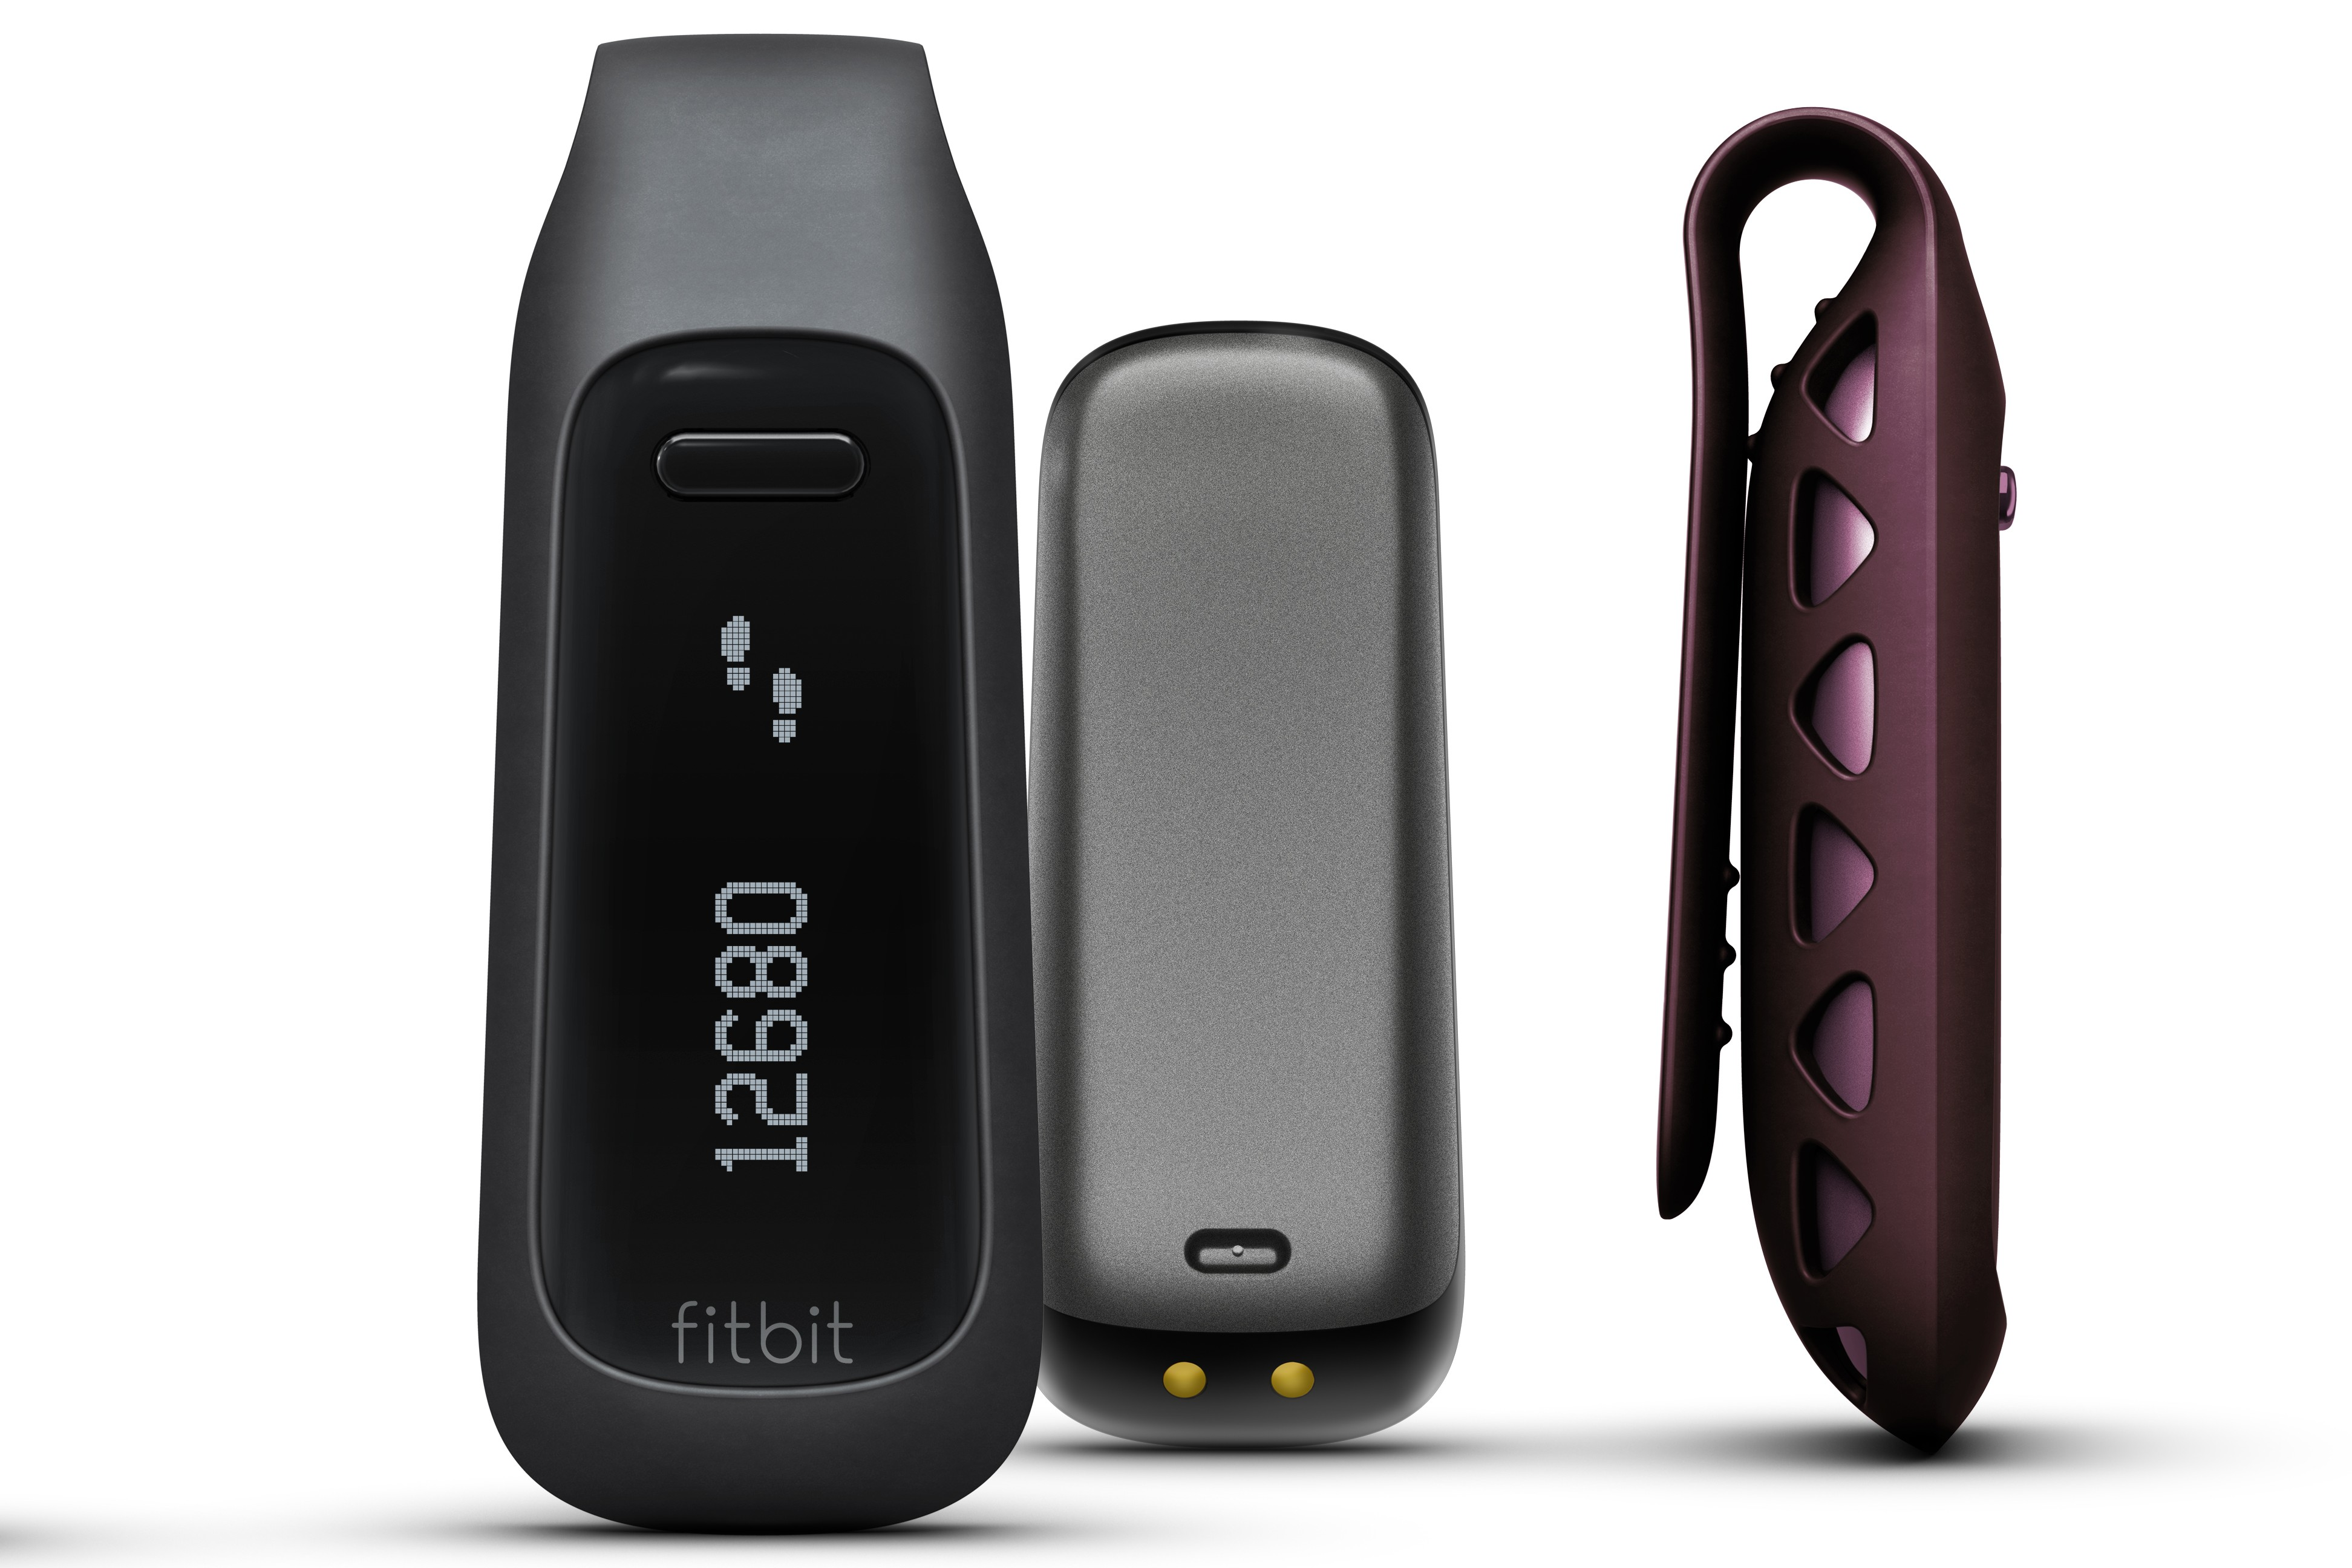 fitbit-one_black-burgundy-e1347847727188